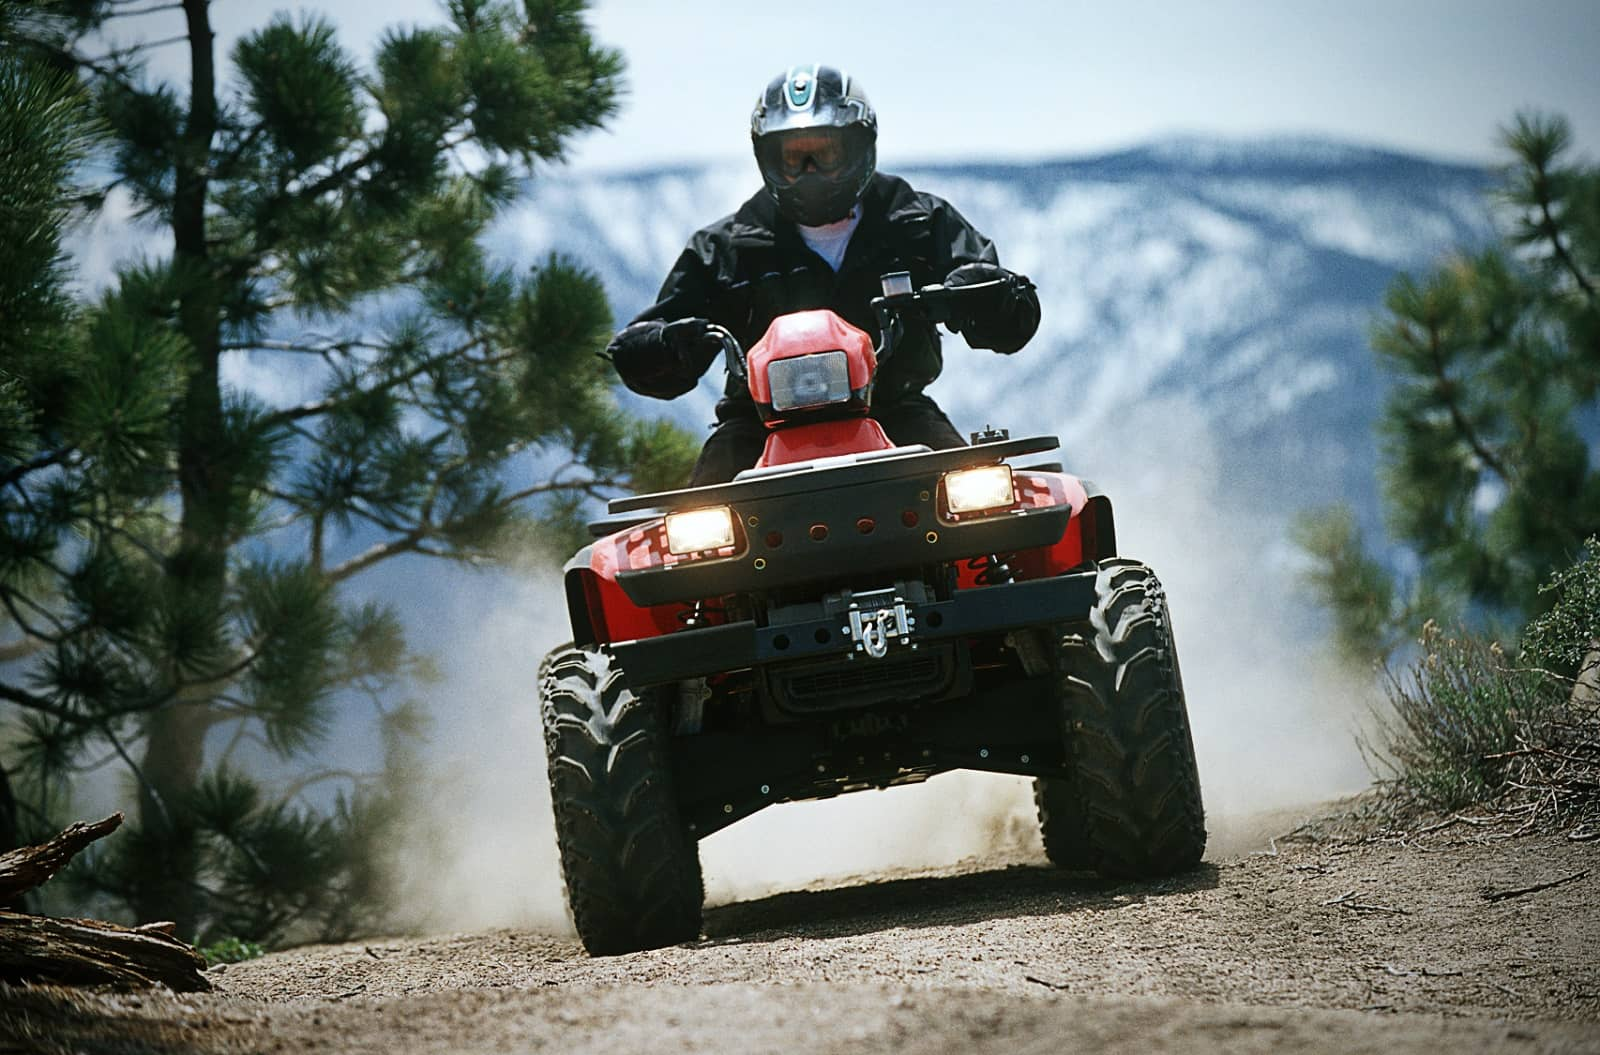 ATV on trail mountains